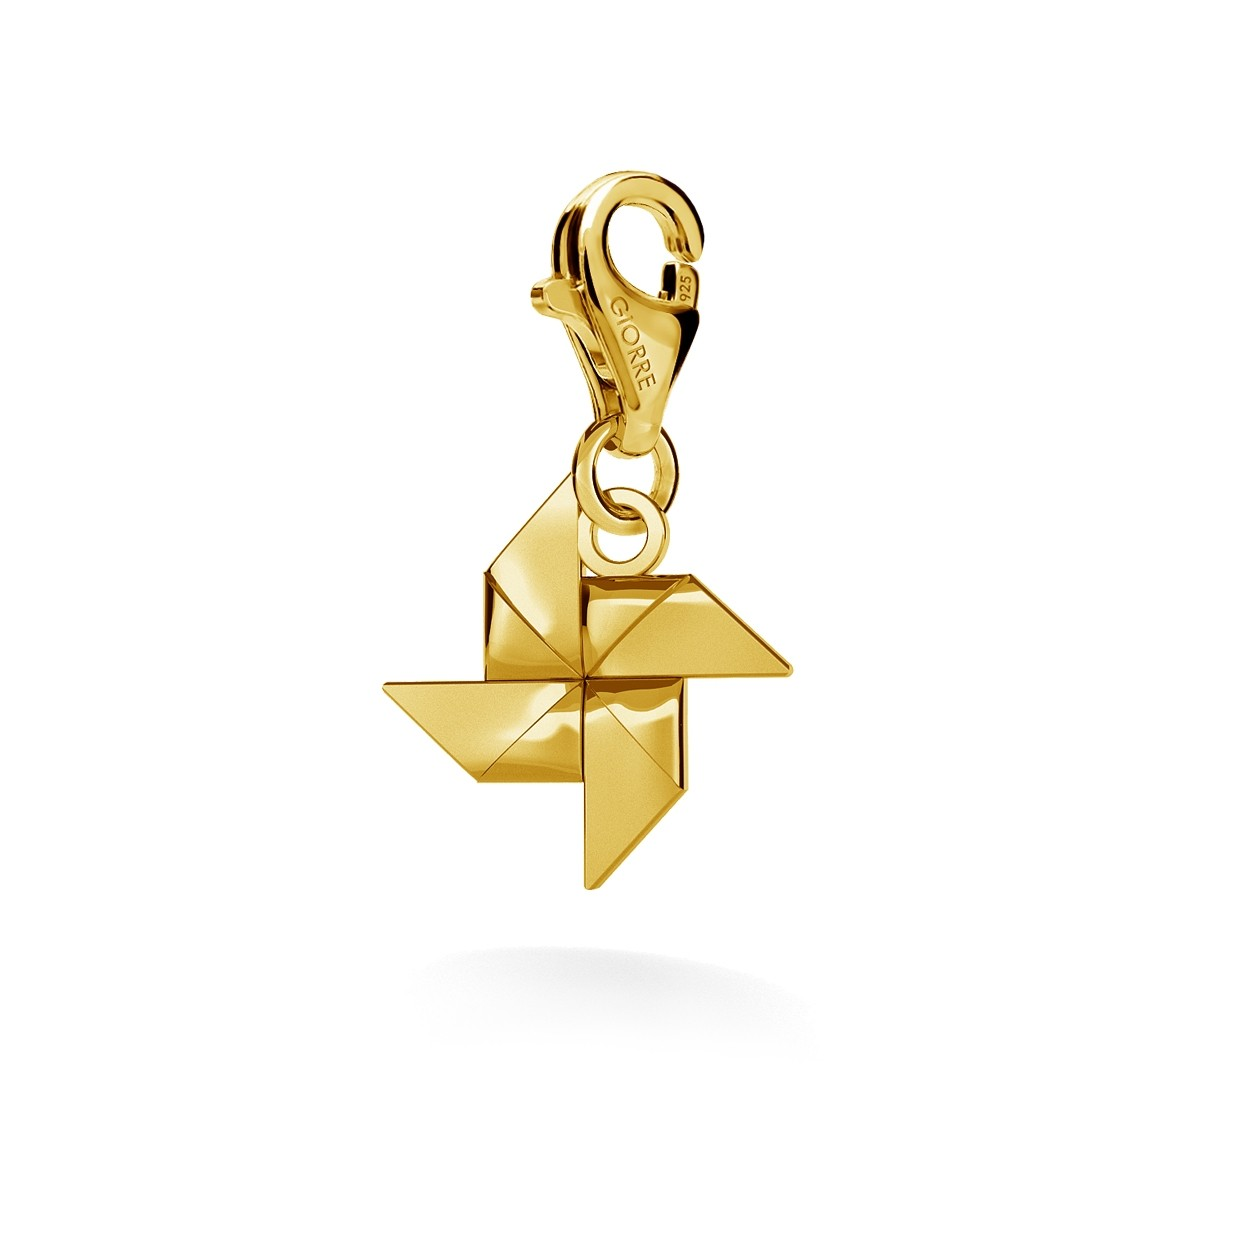 CHARM 42, WINDMILL, SILVER 925,  RHODIUM OR GOLD PLATED